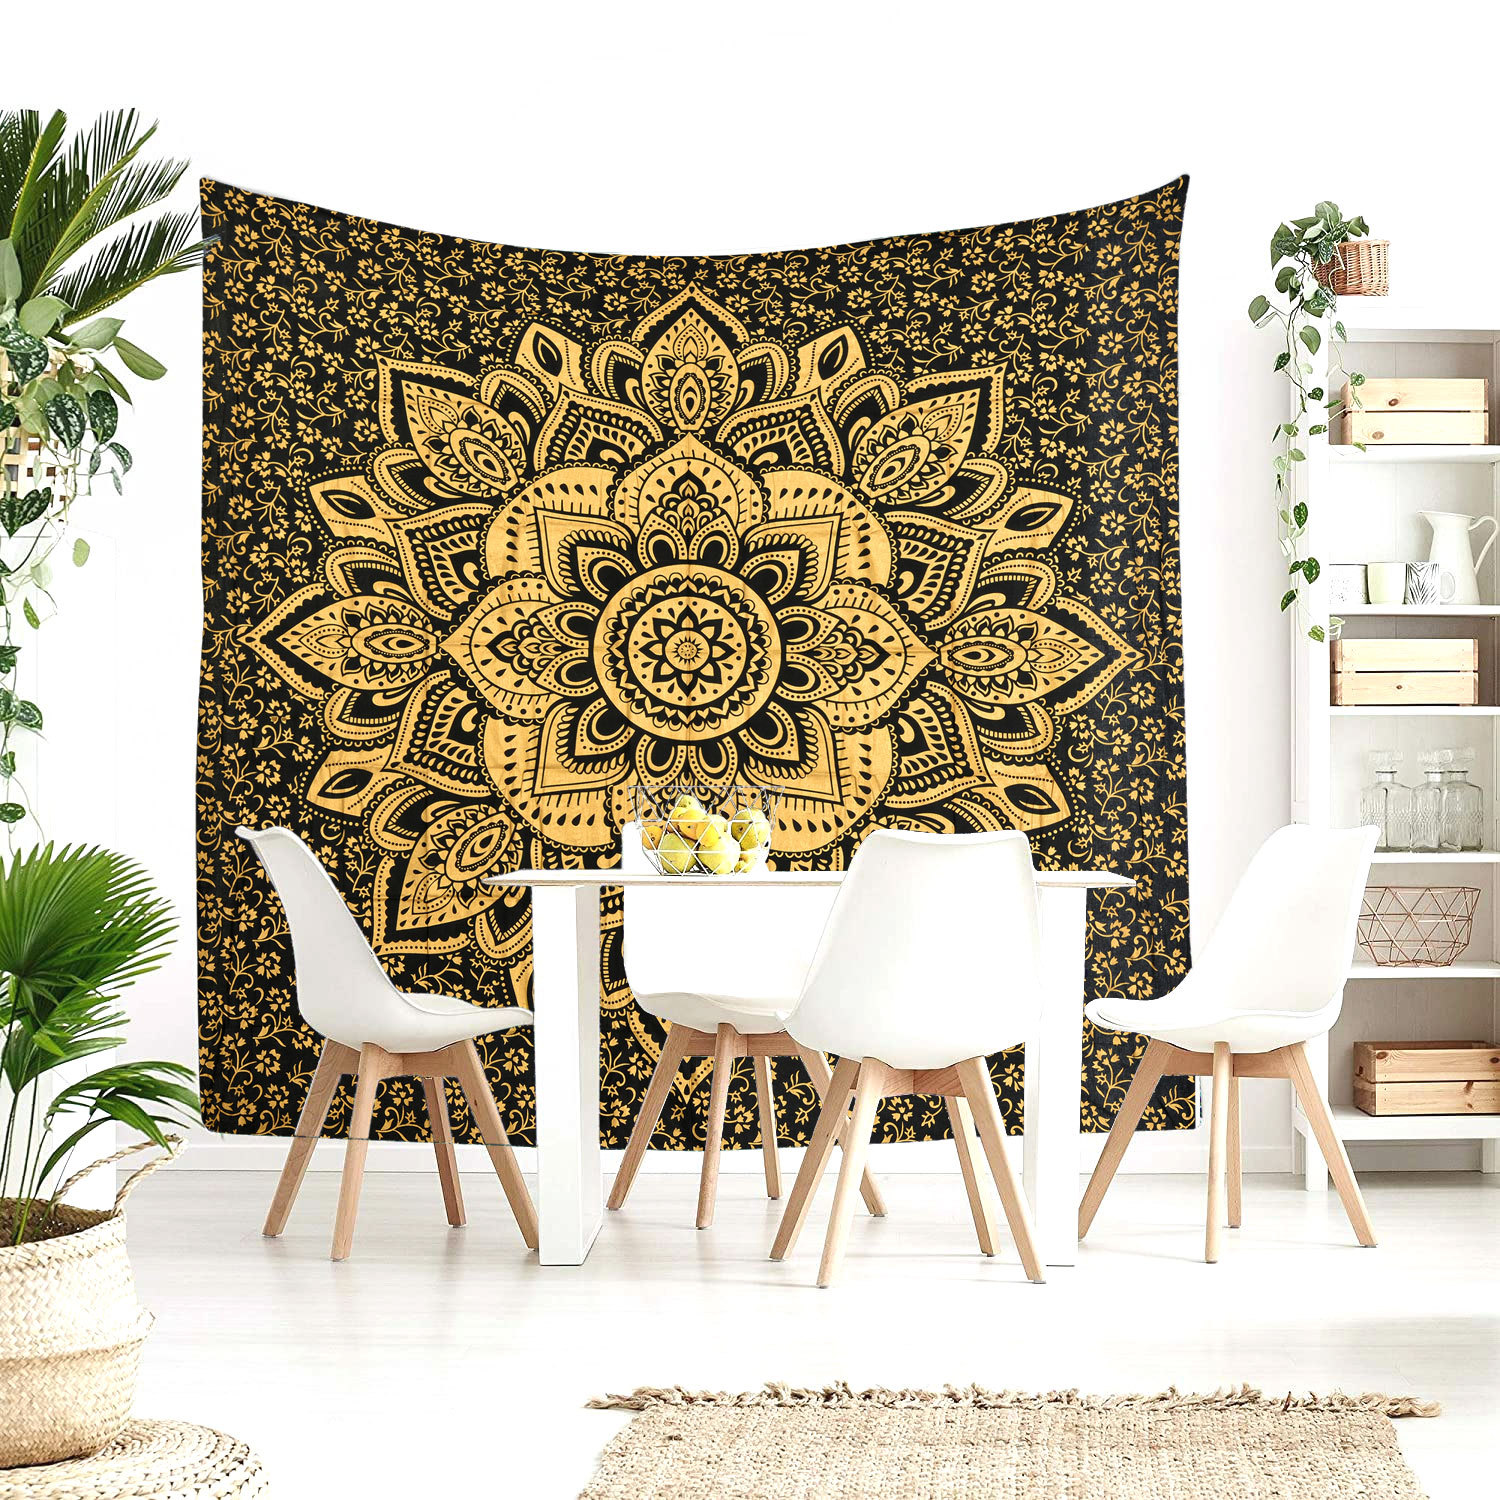 Primary image for Queen Size Black Gold Lotus India Handmade Mandala Bed Sheet Home Decor Bohemian